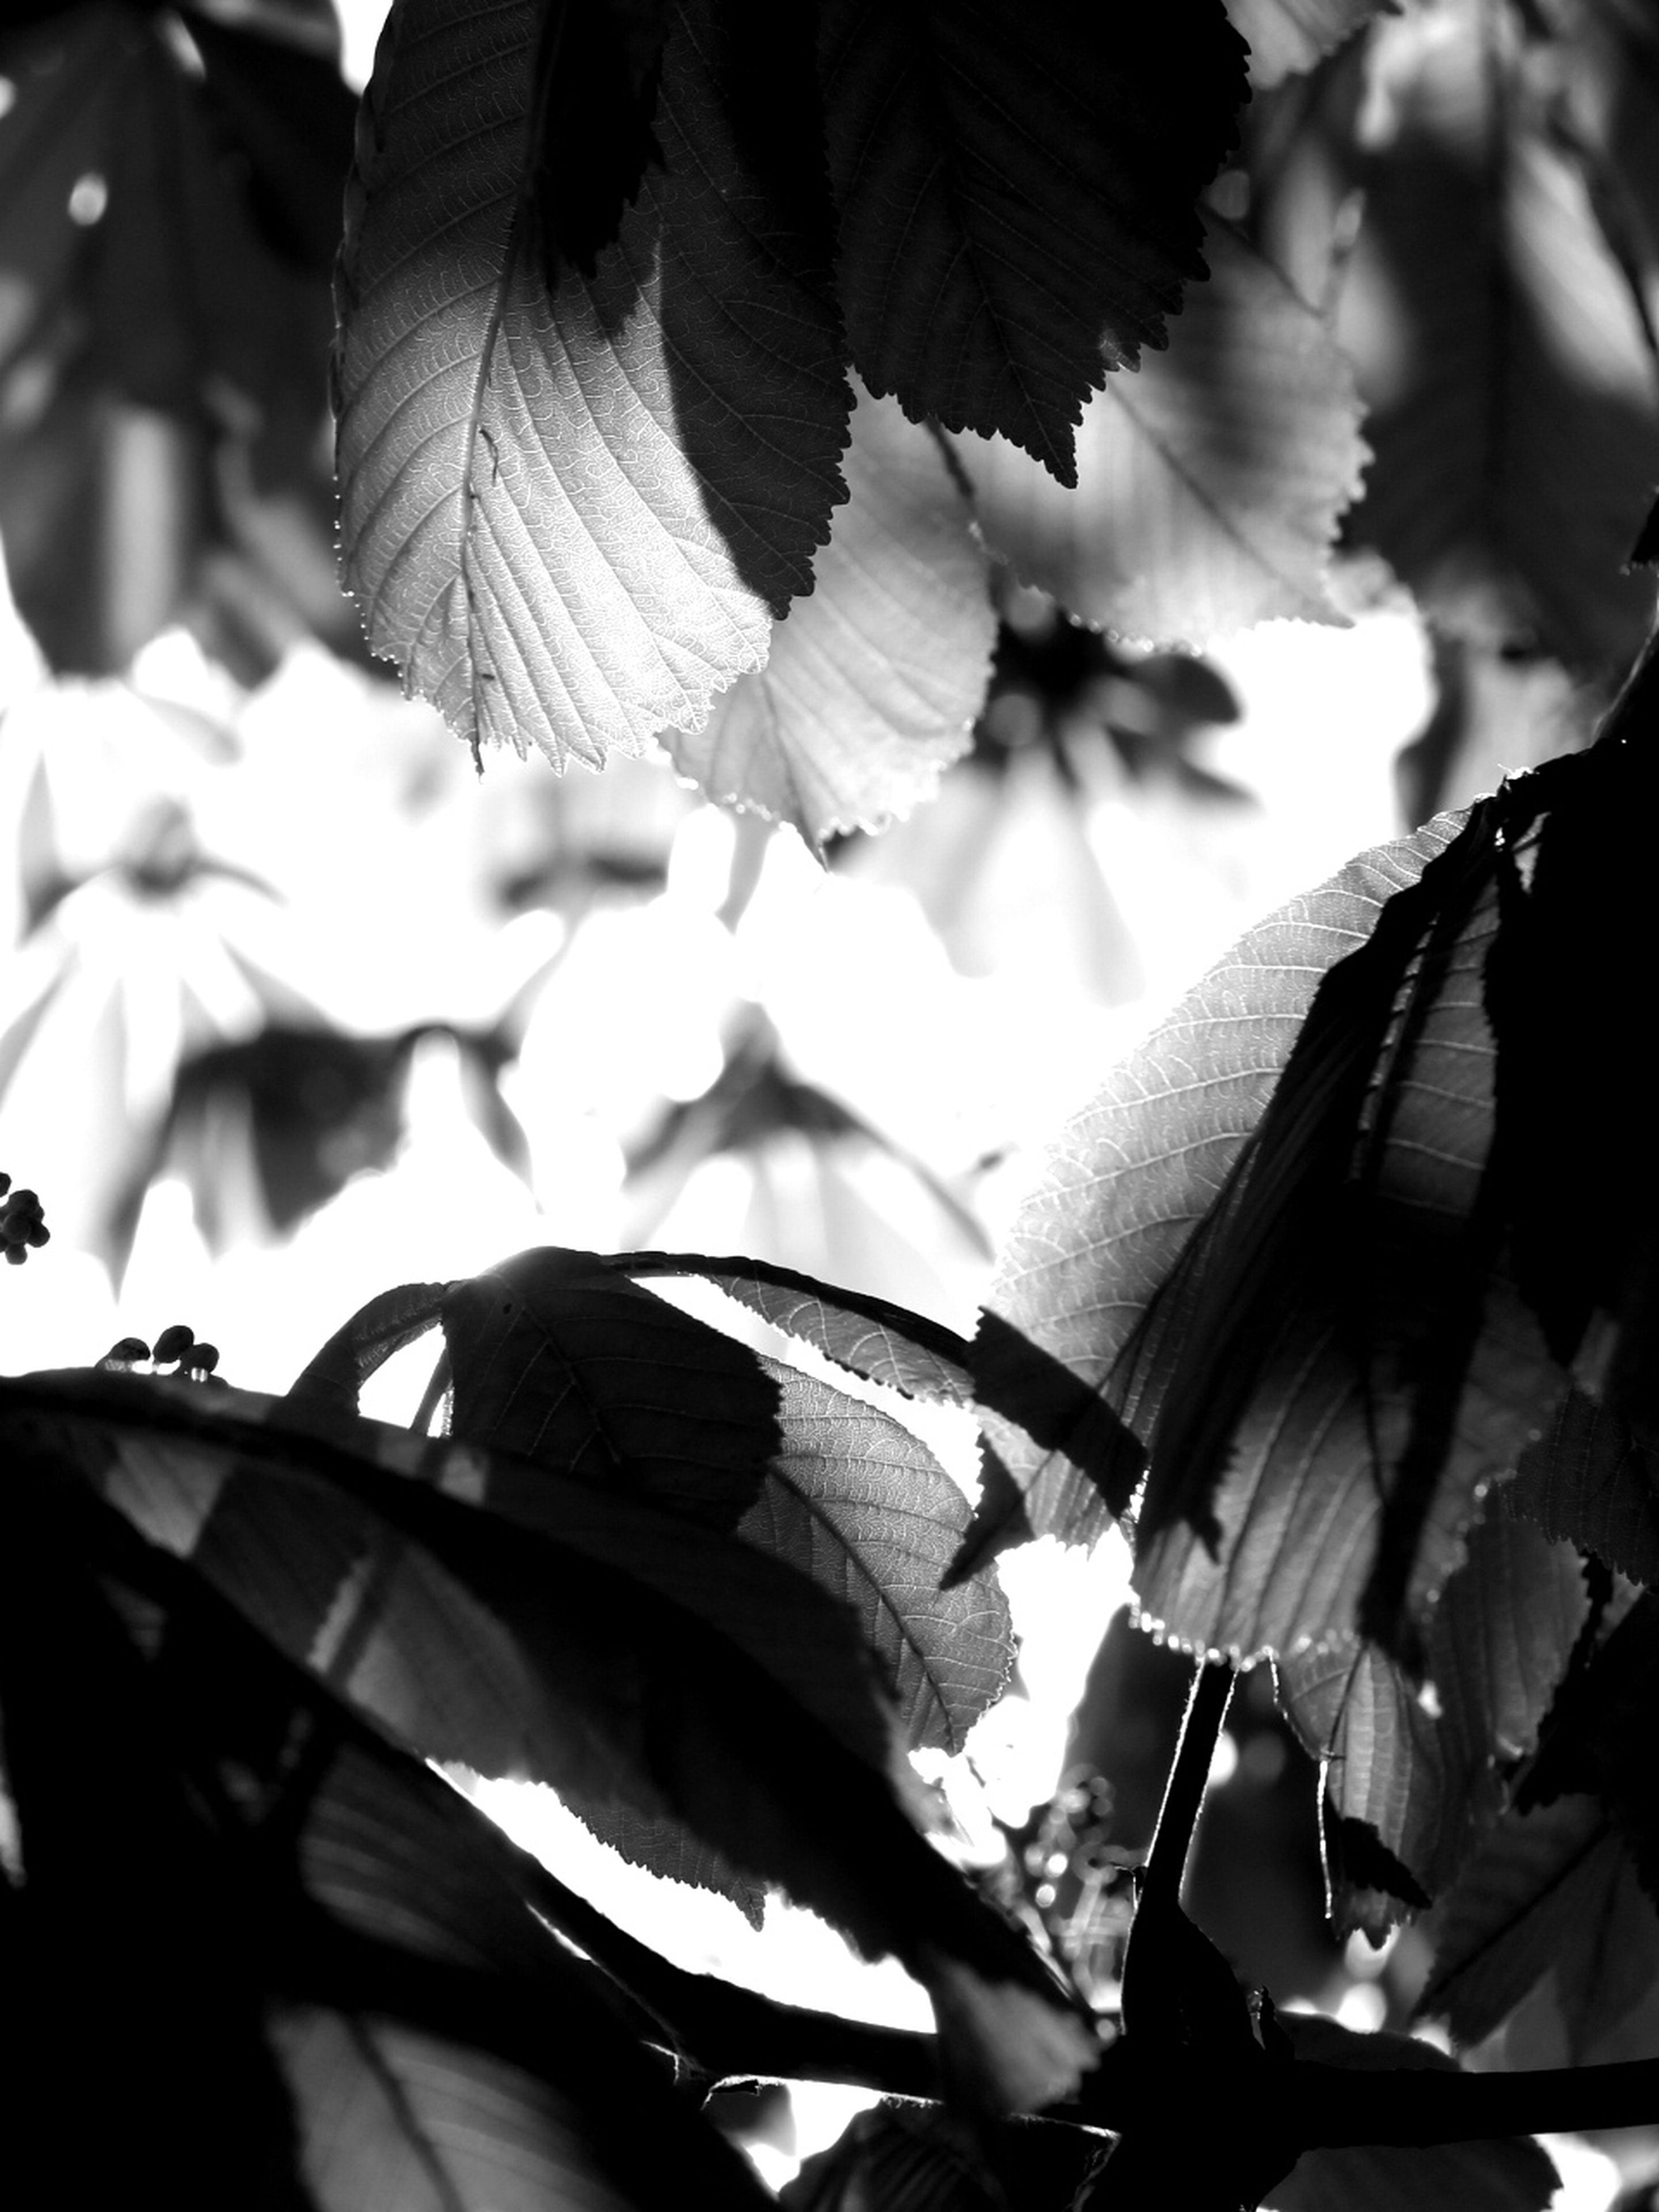 leaf, low angle view, growth, branch, tree, close-up, nature, sunlight, outdoors, day, no people, focus on foreground, beauty in nature, leaves, plant, leaf vein, natural pattern, sky, part of, silhouette